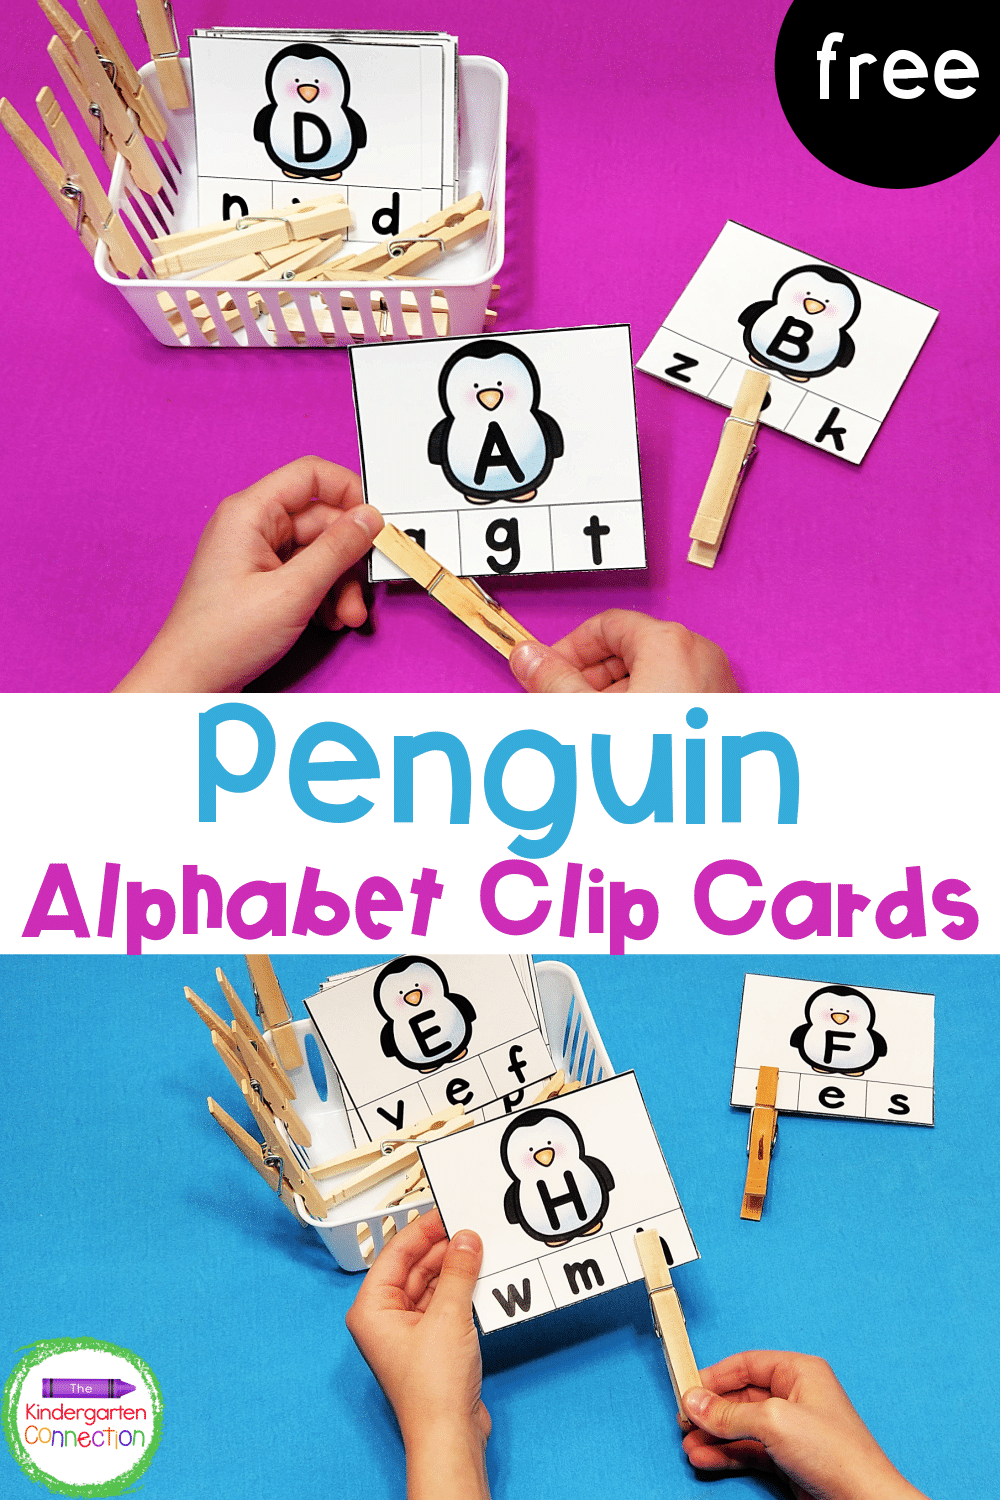 Grab our FREE Printable Penguin Alphabet Clip Cards for Pre-K or Kindergarten and add some seasonal fun to your literacy centers!